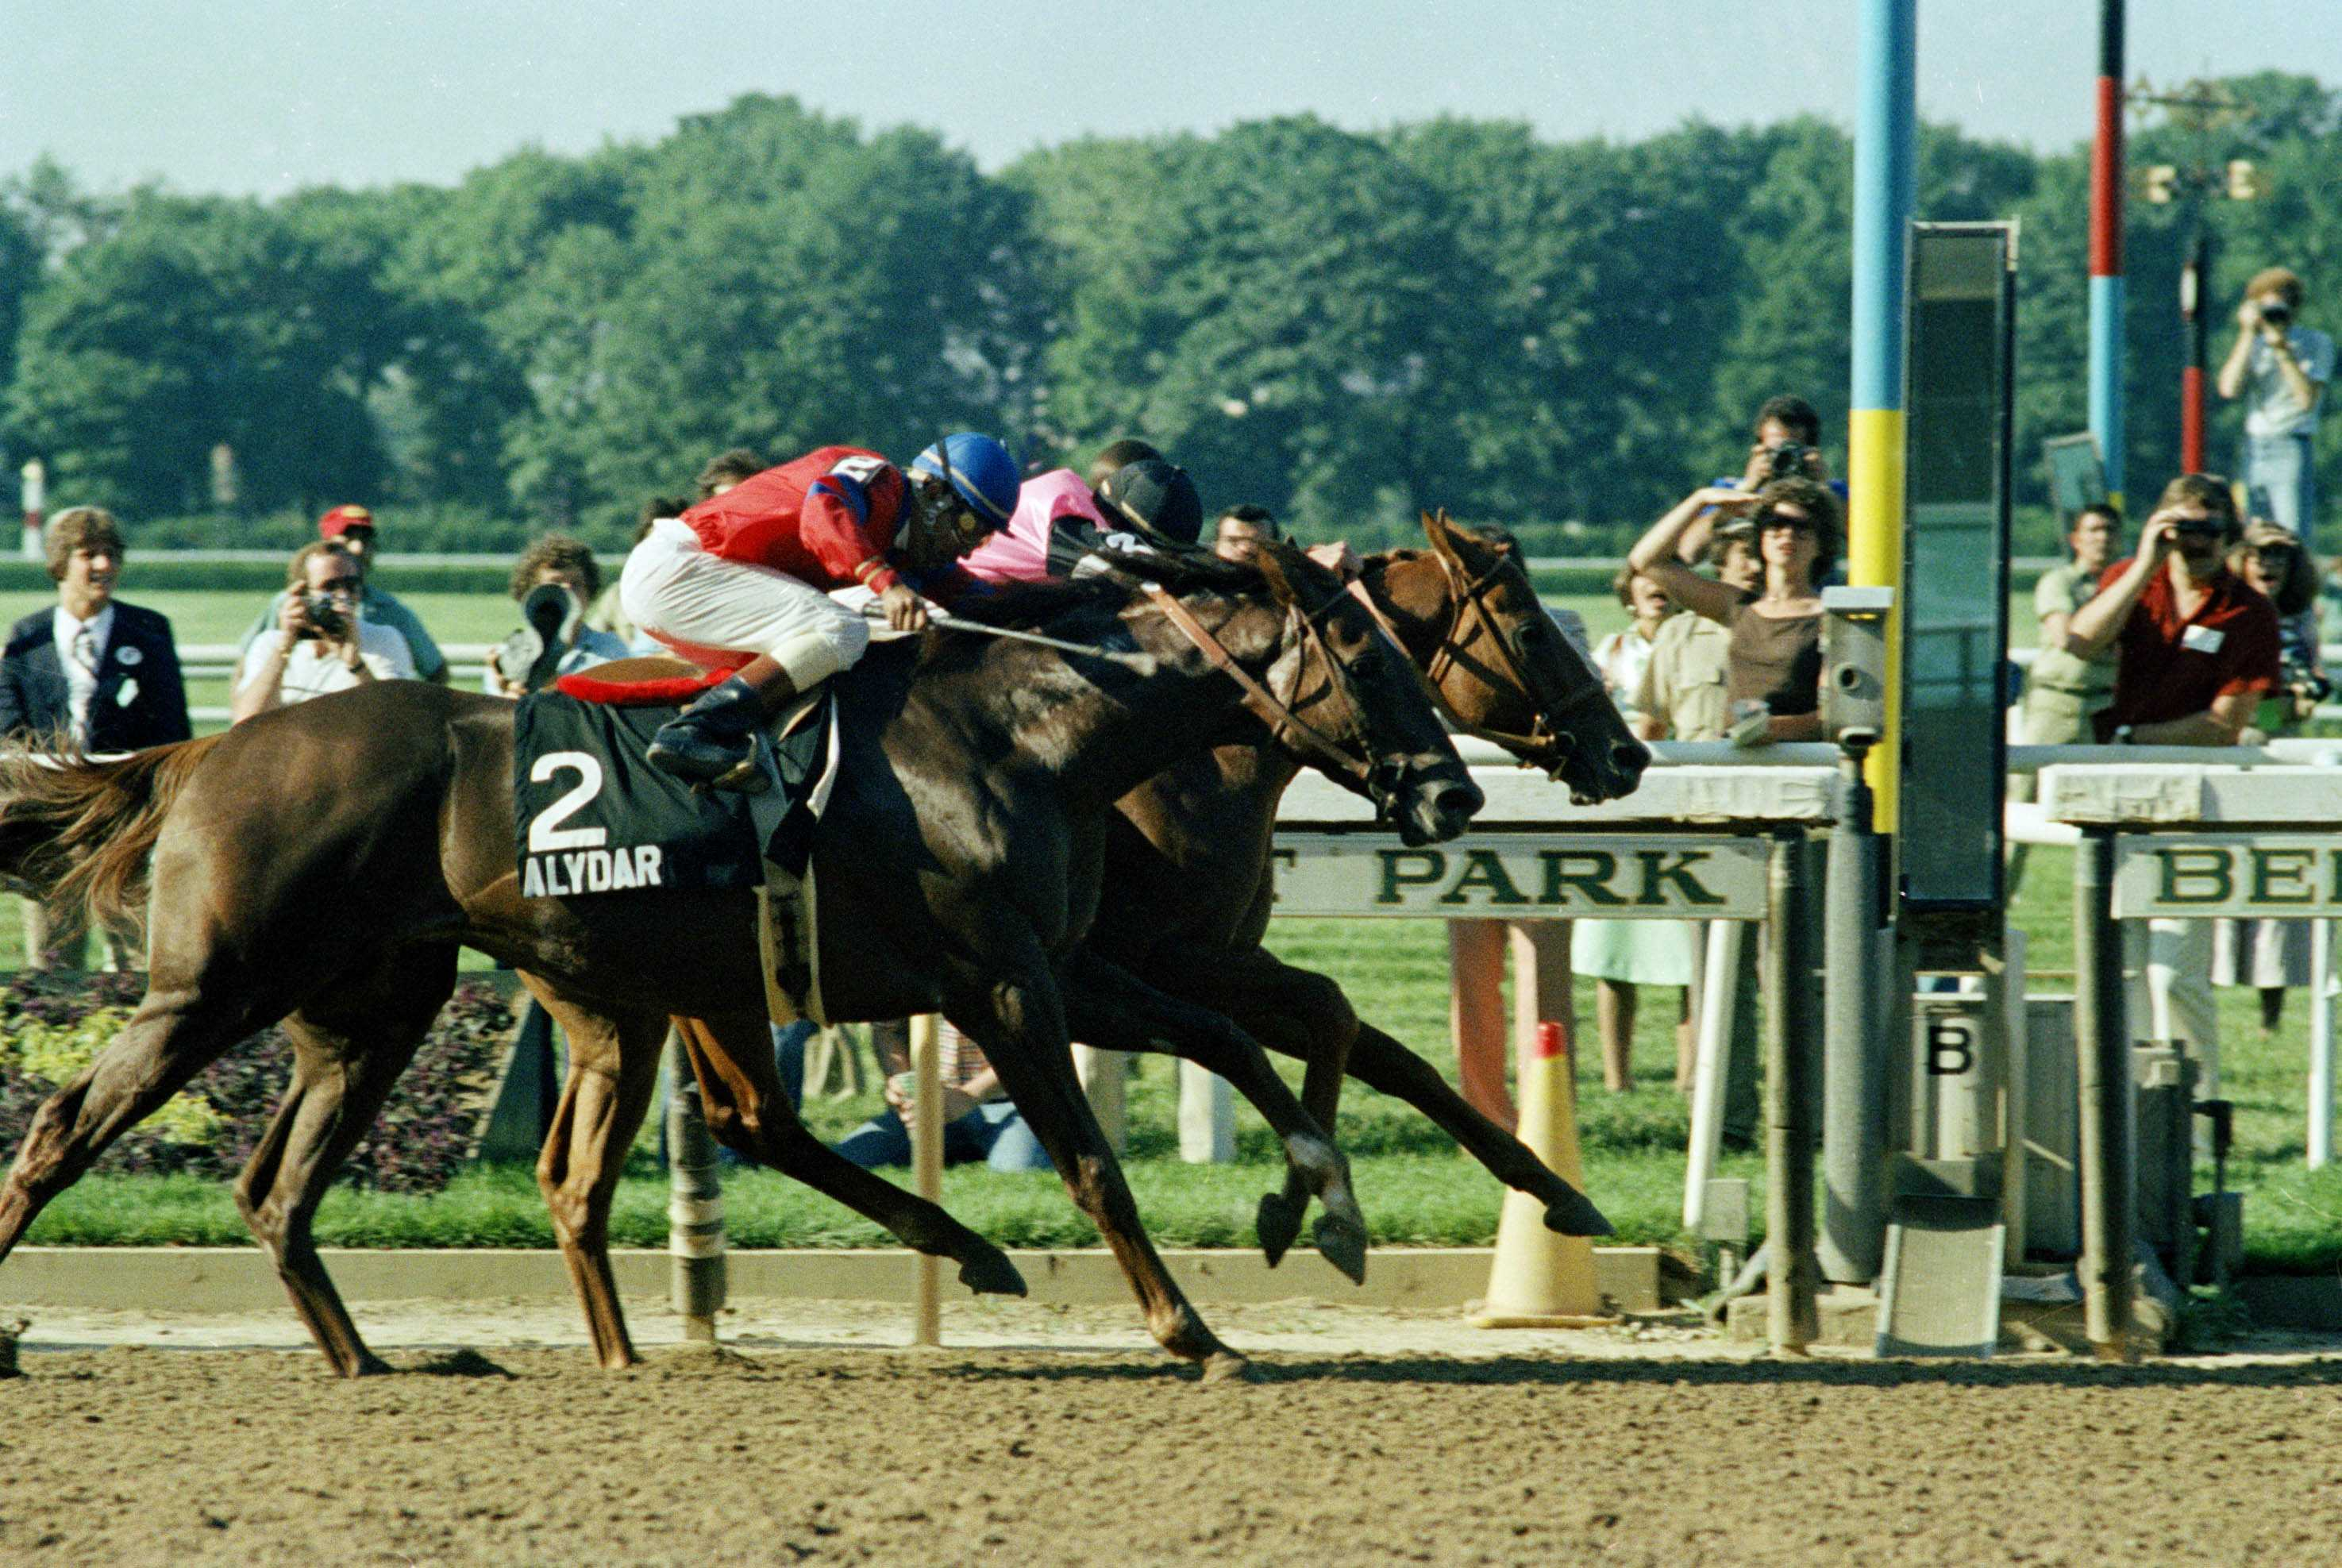 Affirmed, ridden by jockey Steve Cauthen, pulls ahead of Alydar, ridden by Jorge Velasquez, to win Belmont Stakes, June 10, 1978 at Belmont Park in Elmont, N.Y.